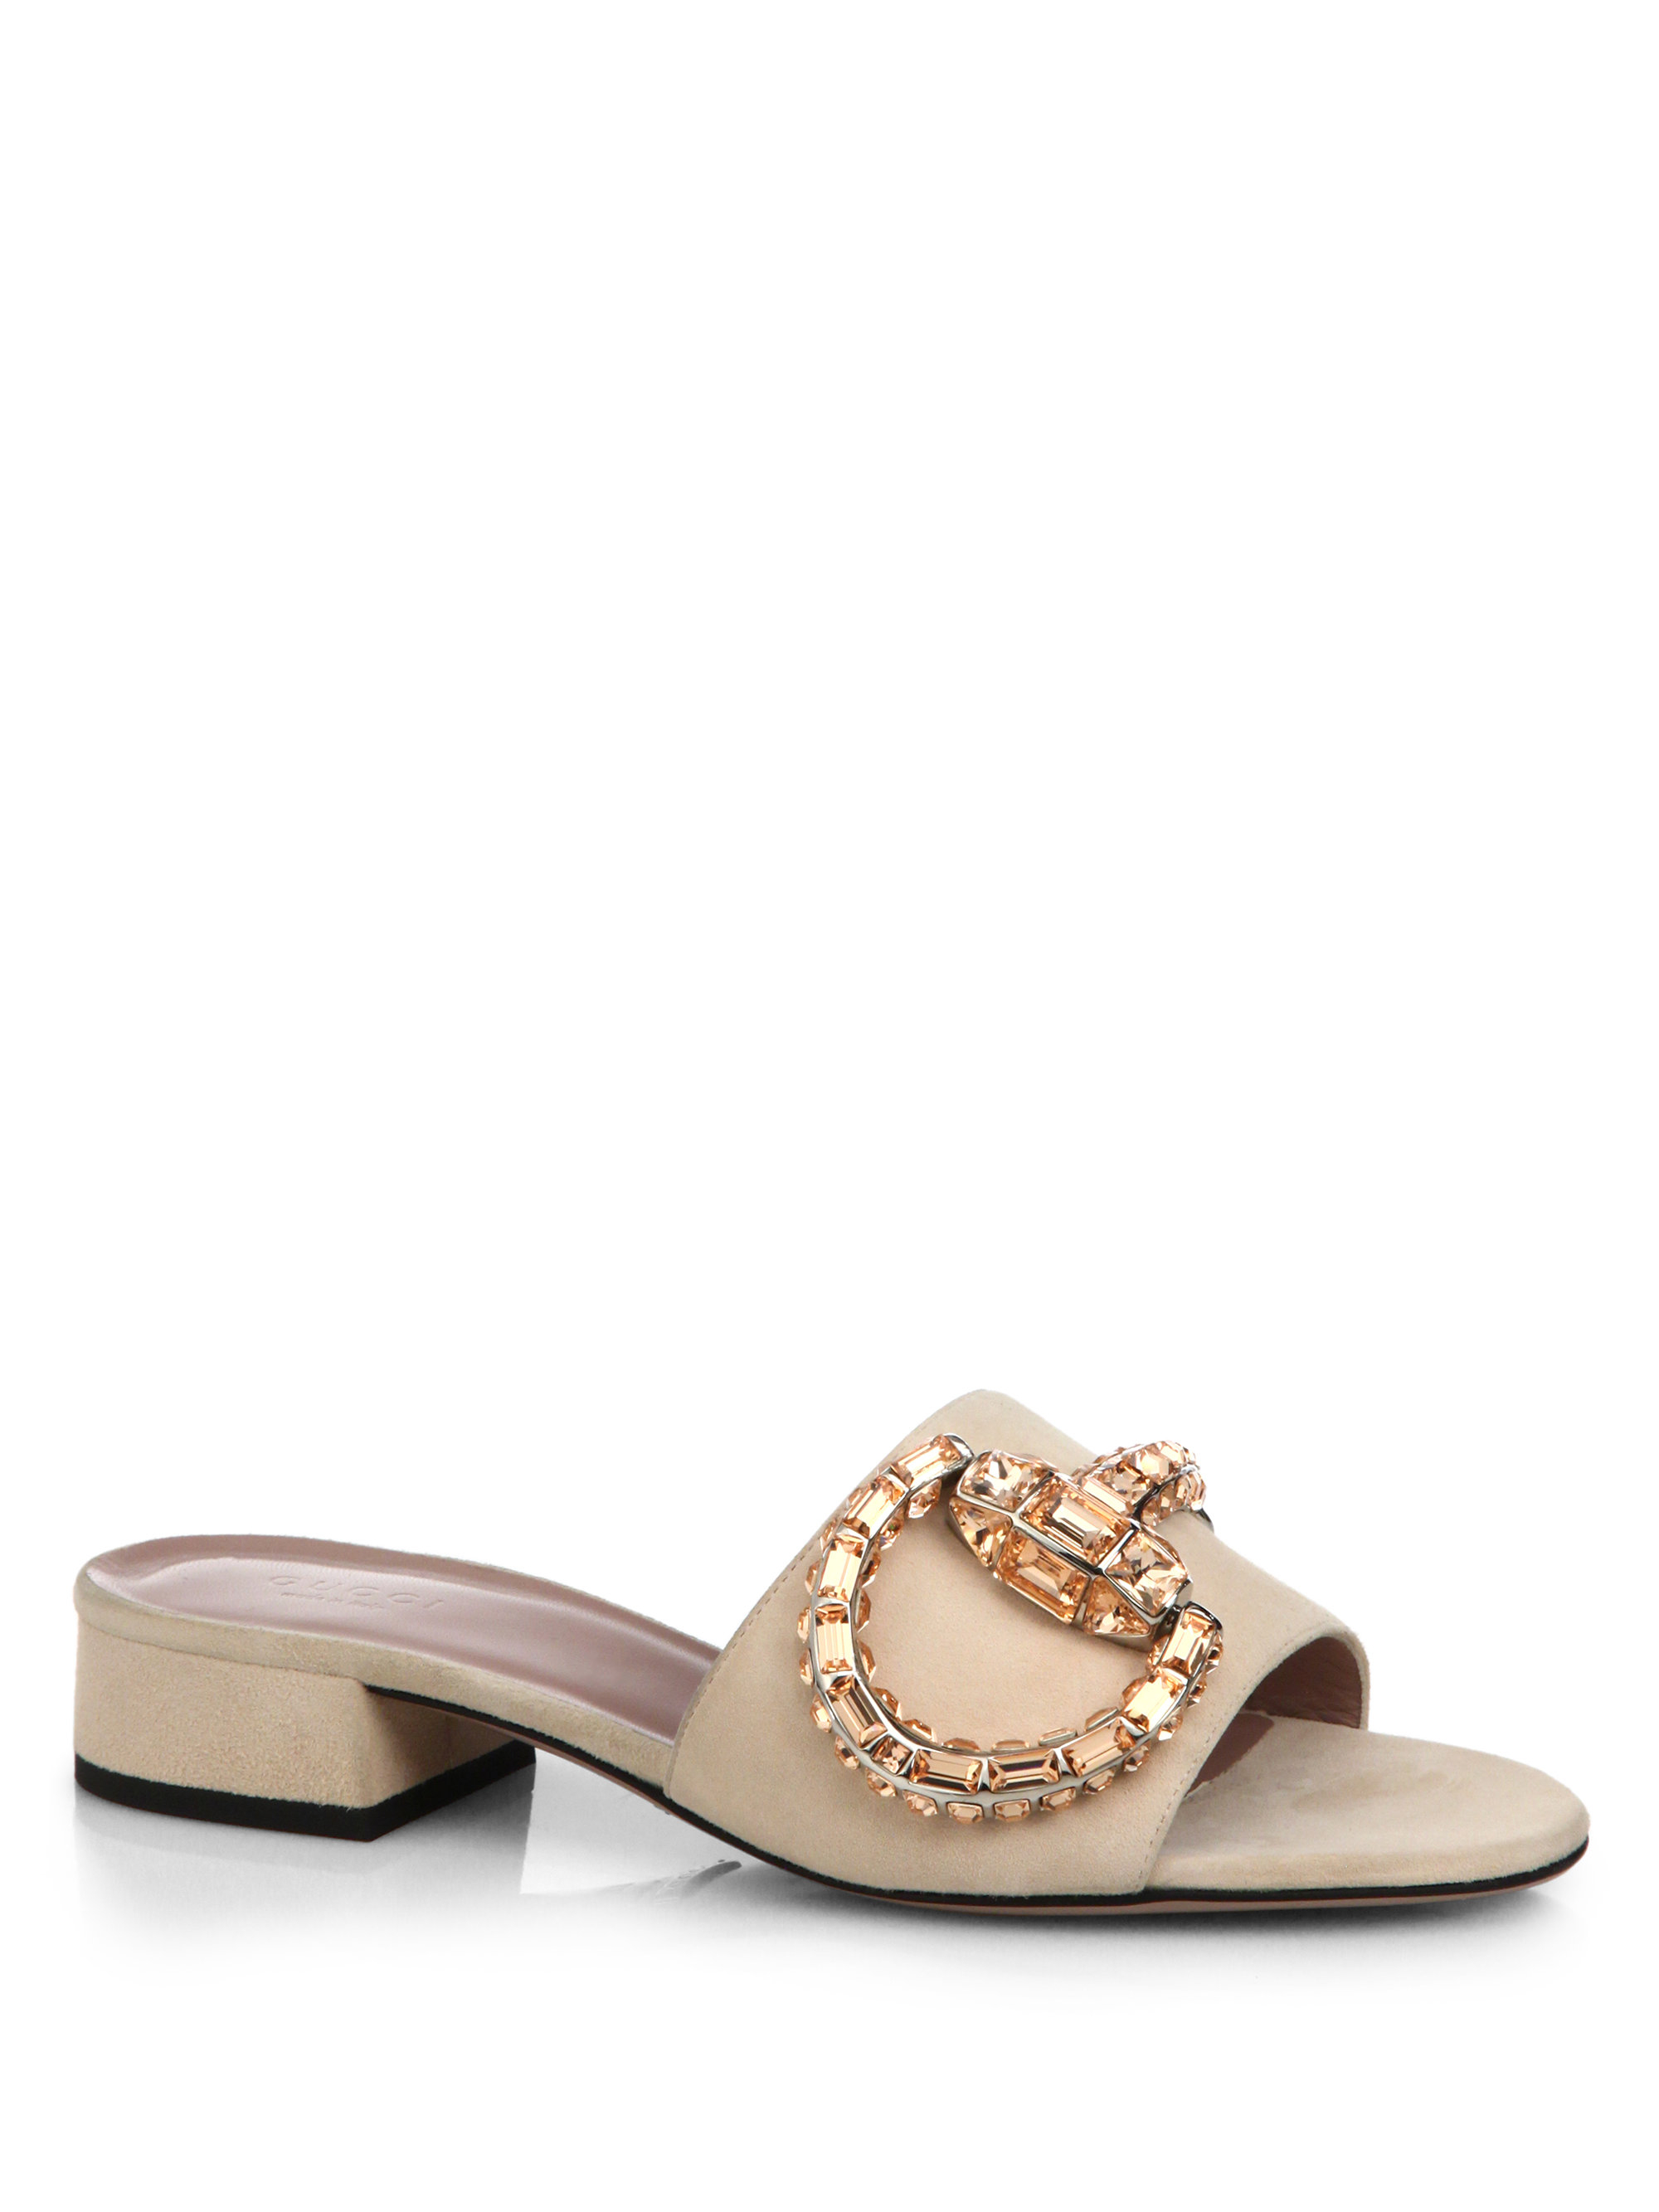 aa1dcd3e136 Lyst - Gucci Maxime Crystal Suede Slides in Natural